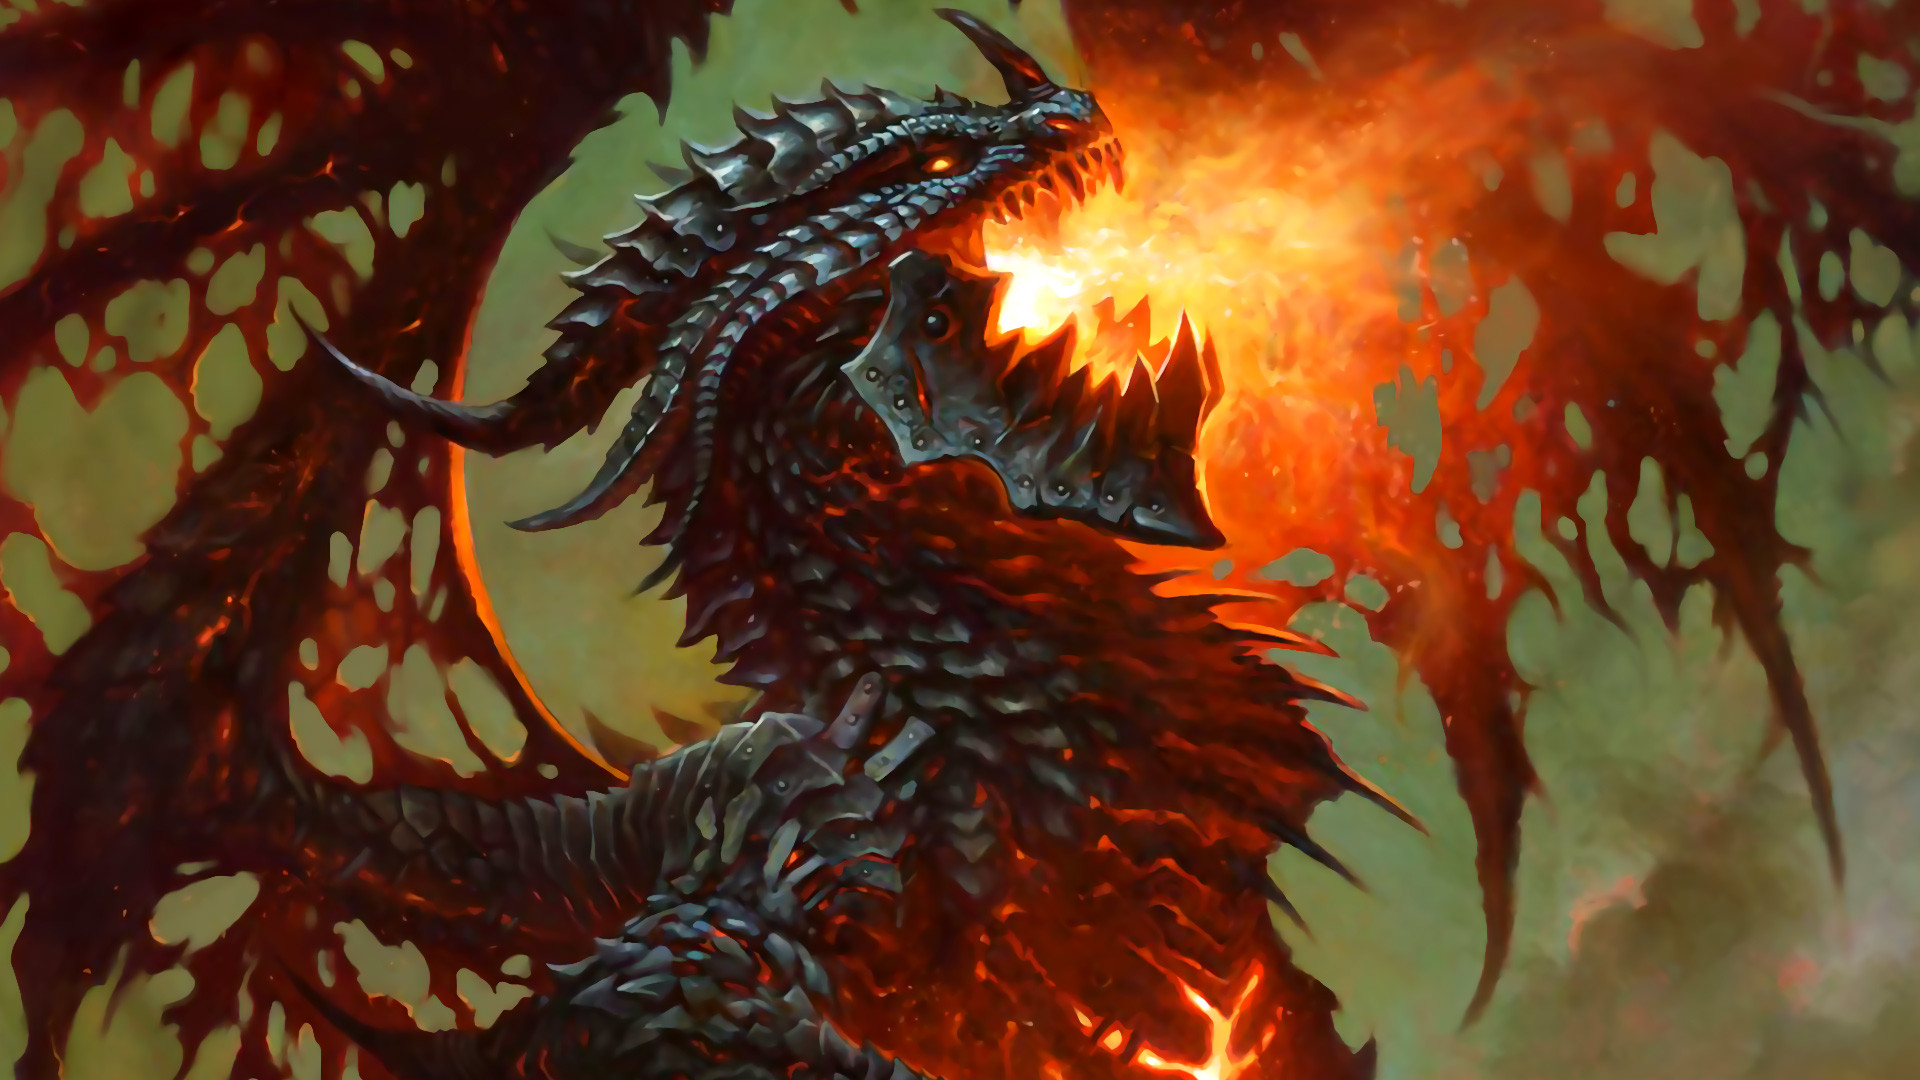 1920x1080 deathwing-dragonlord-